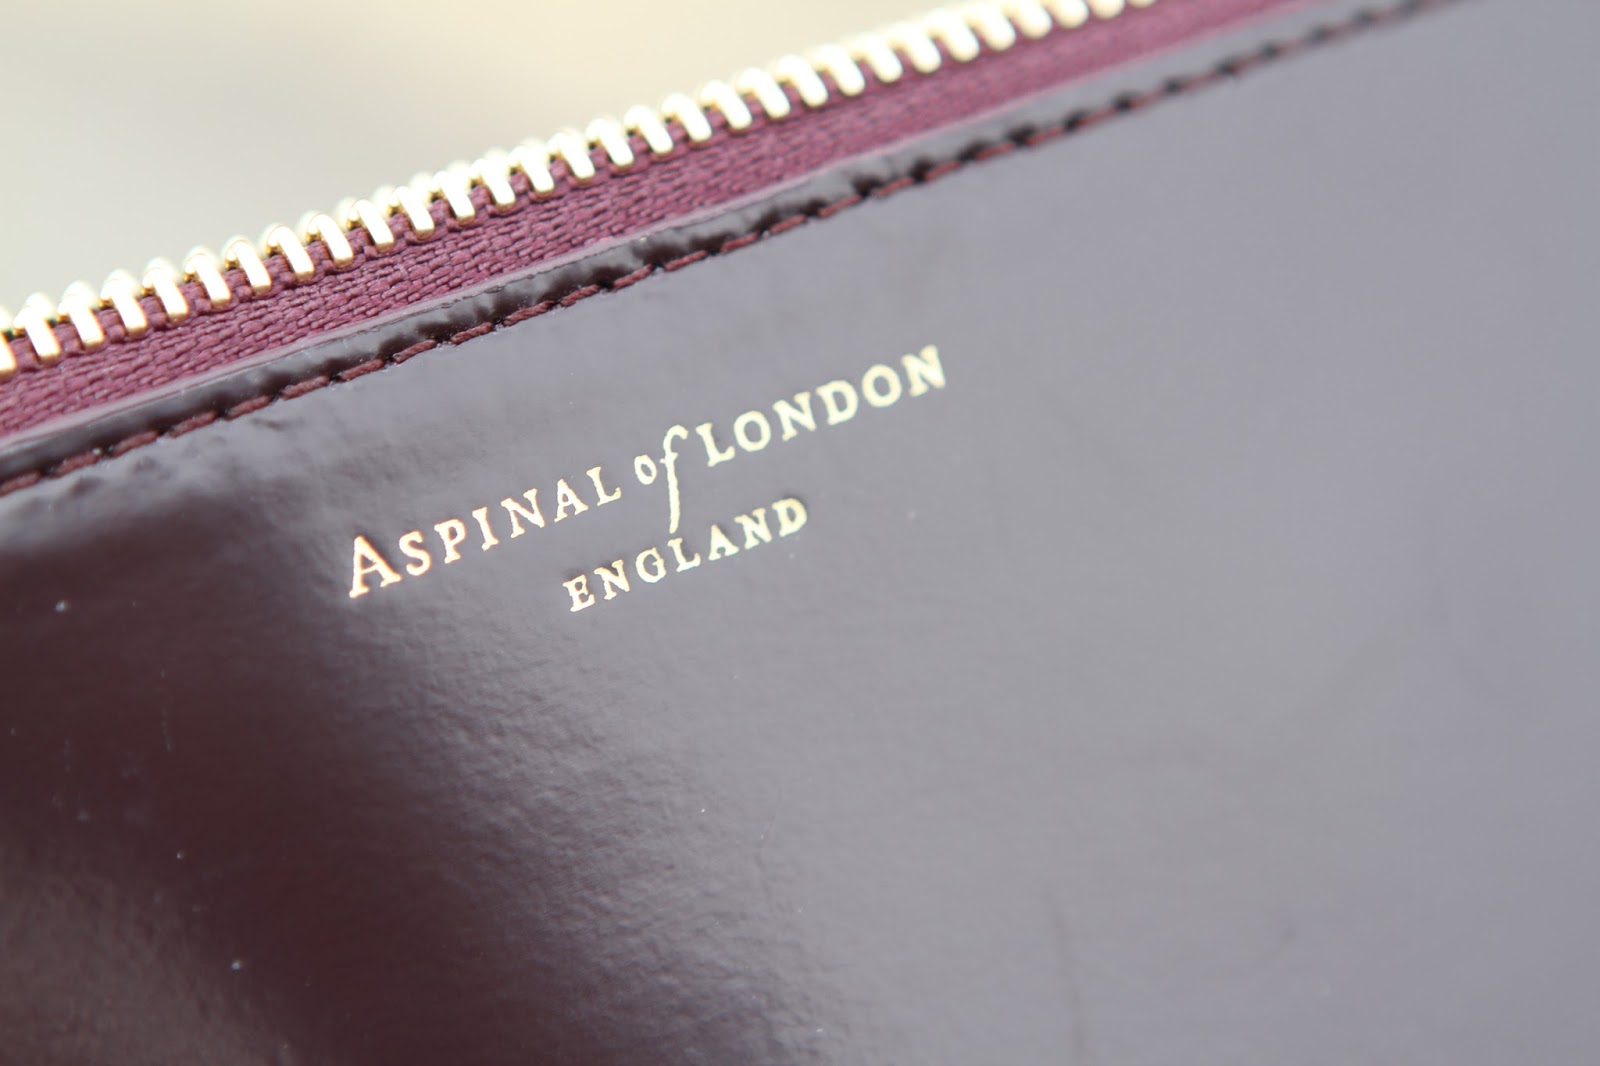 Aspinal of london large pouch